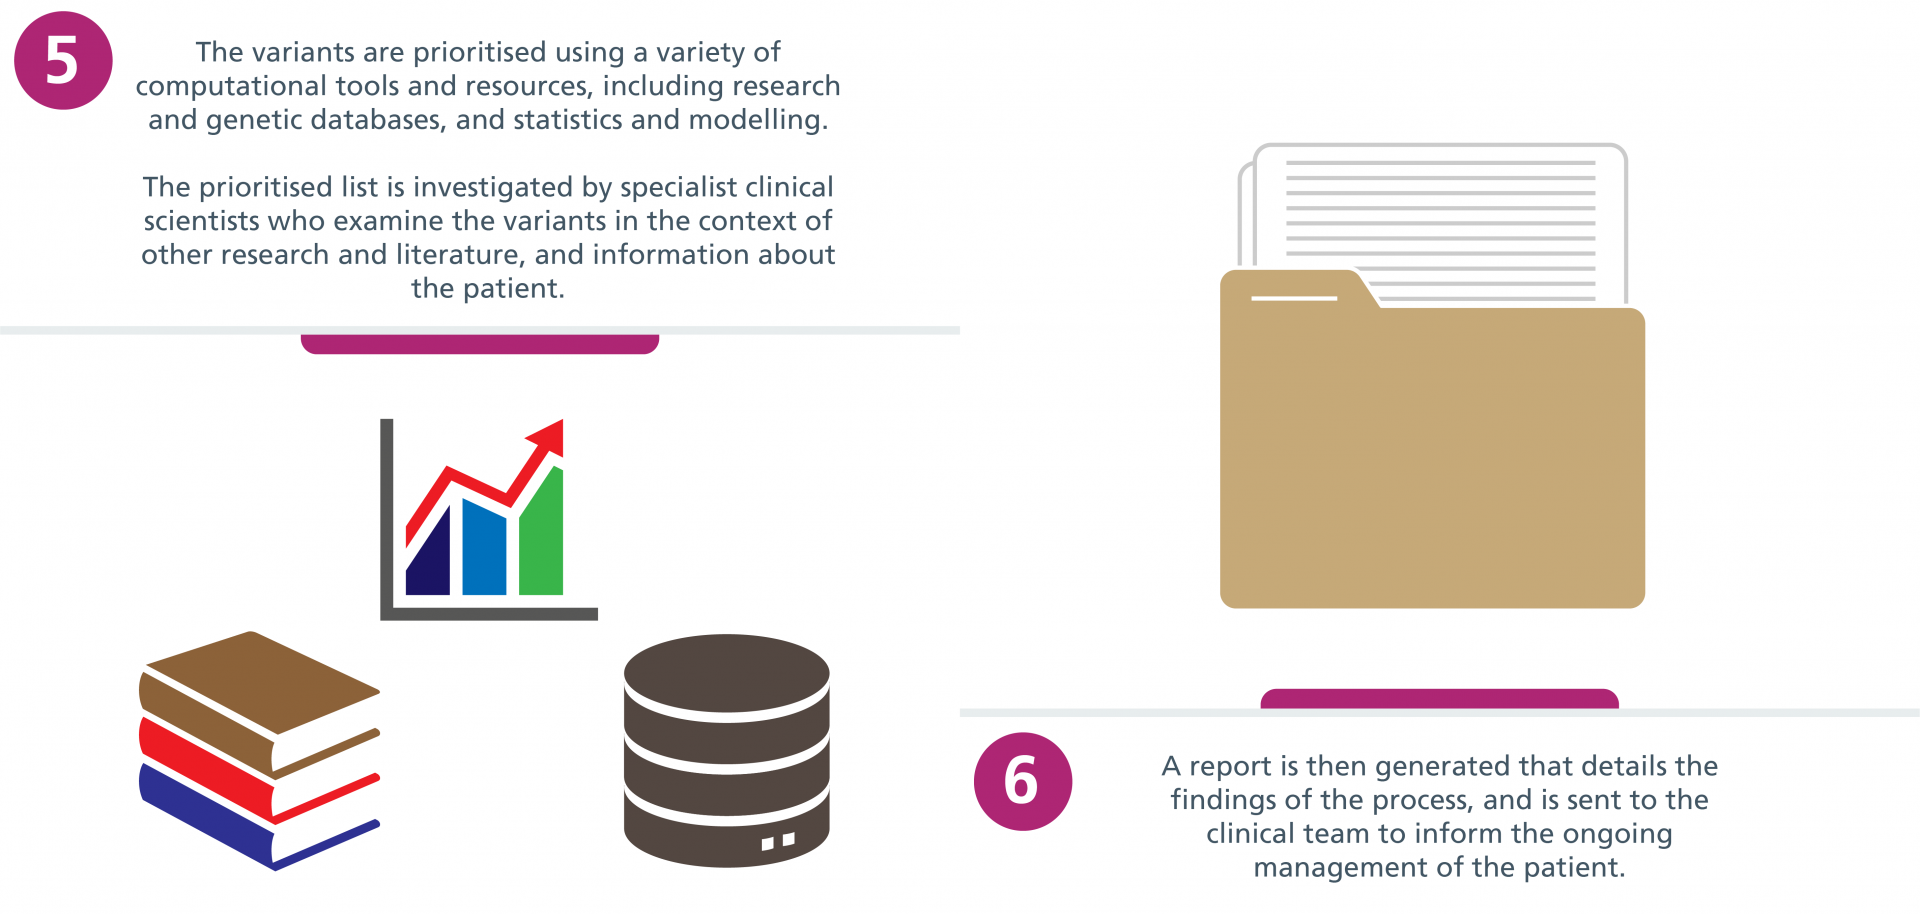 Step 5: The variants are prioritised using a variety of computational tools and resources, including research and genetic databases, and statistics and modelling. The prioritised list is investigated by specialist clinical scientists who examine the variants in the context of other research and literature, and information about the patient. Step 6: A report is then generated that details the findings of the process, and is sent to the clinical team to inform the ongoing management of the patient.